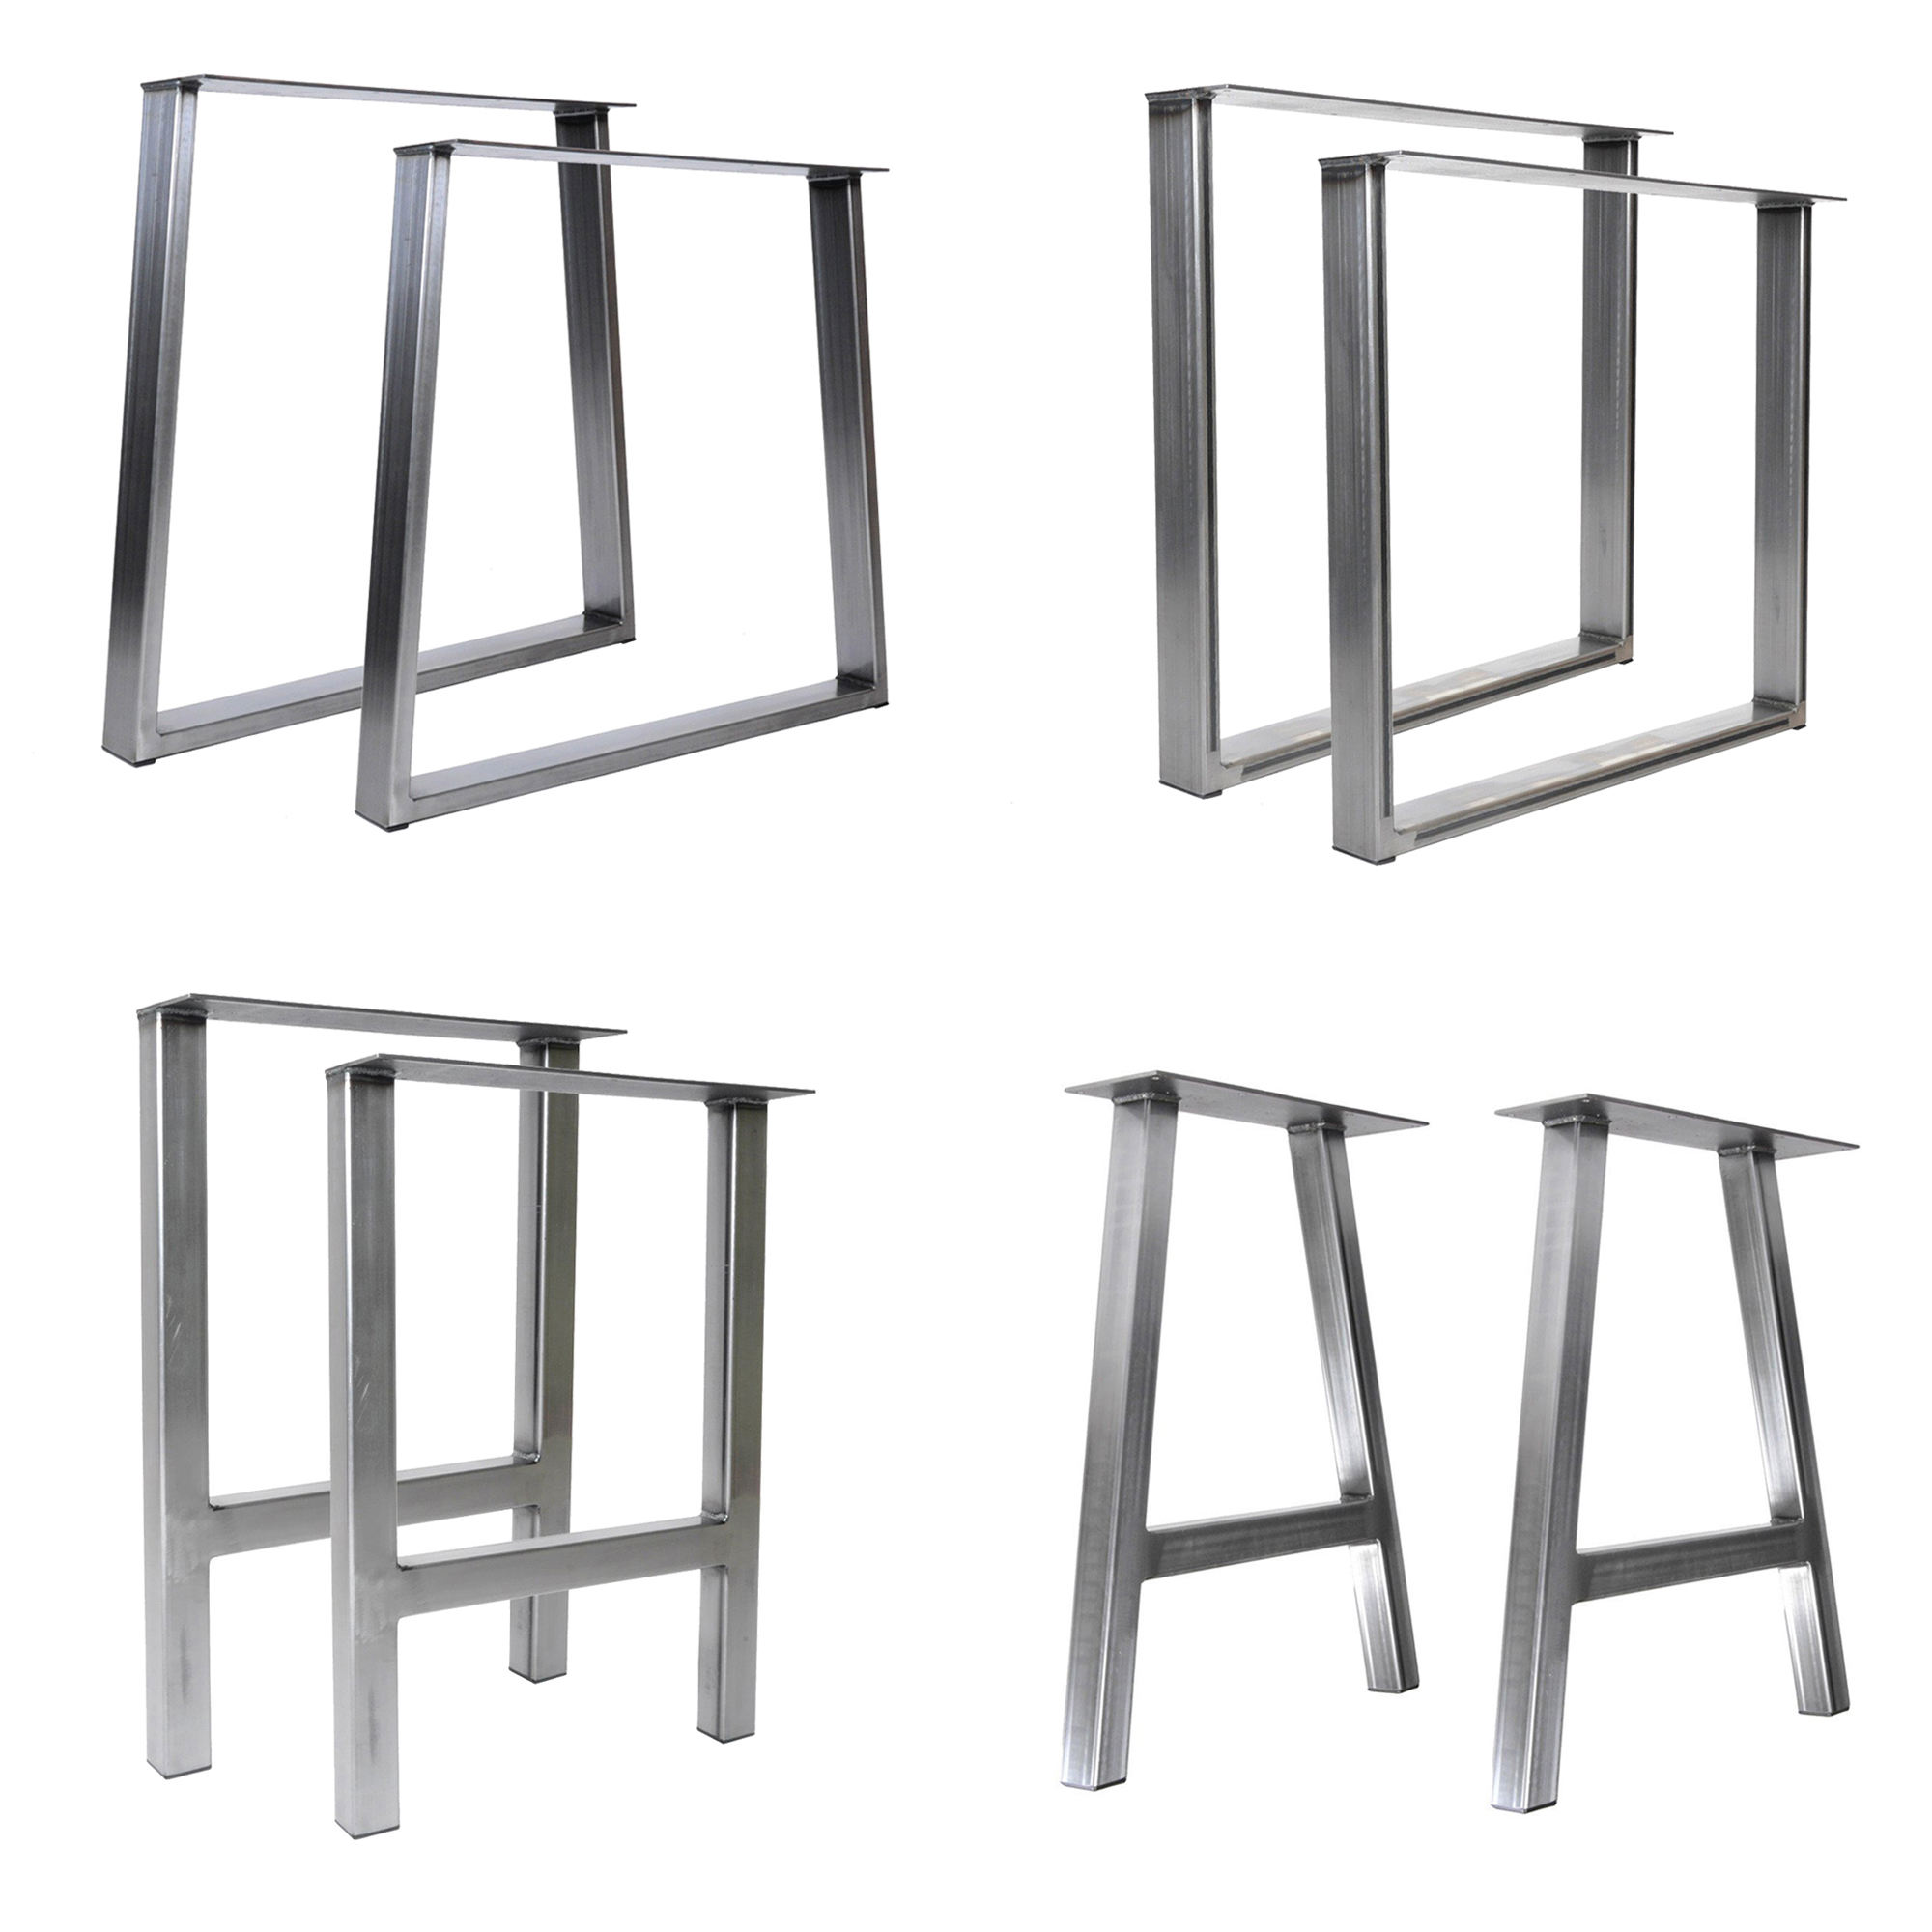 Stainless Steel Table Legs Heavy Duty Furniture Feet Frame Brushed Polished Square Office Desk Dining Stainless Steel Table Legs